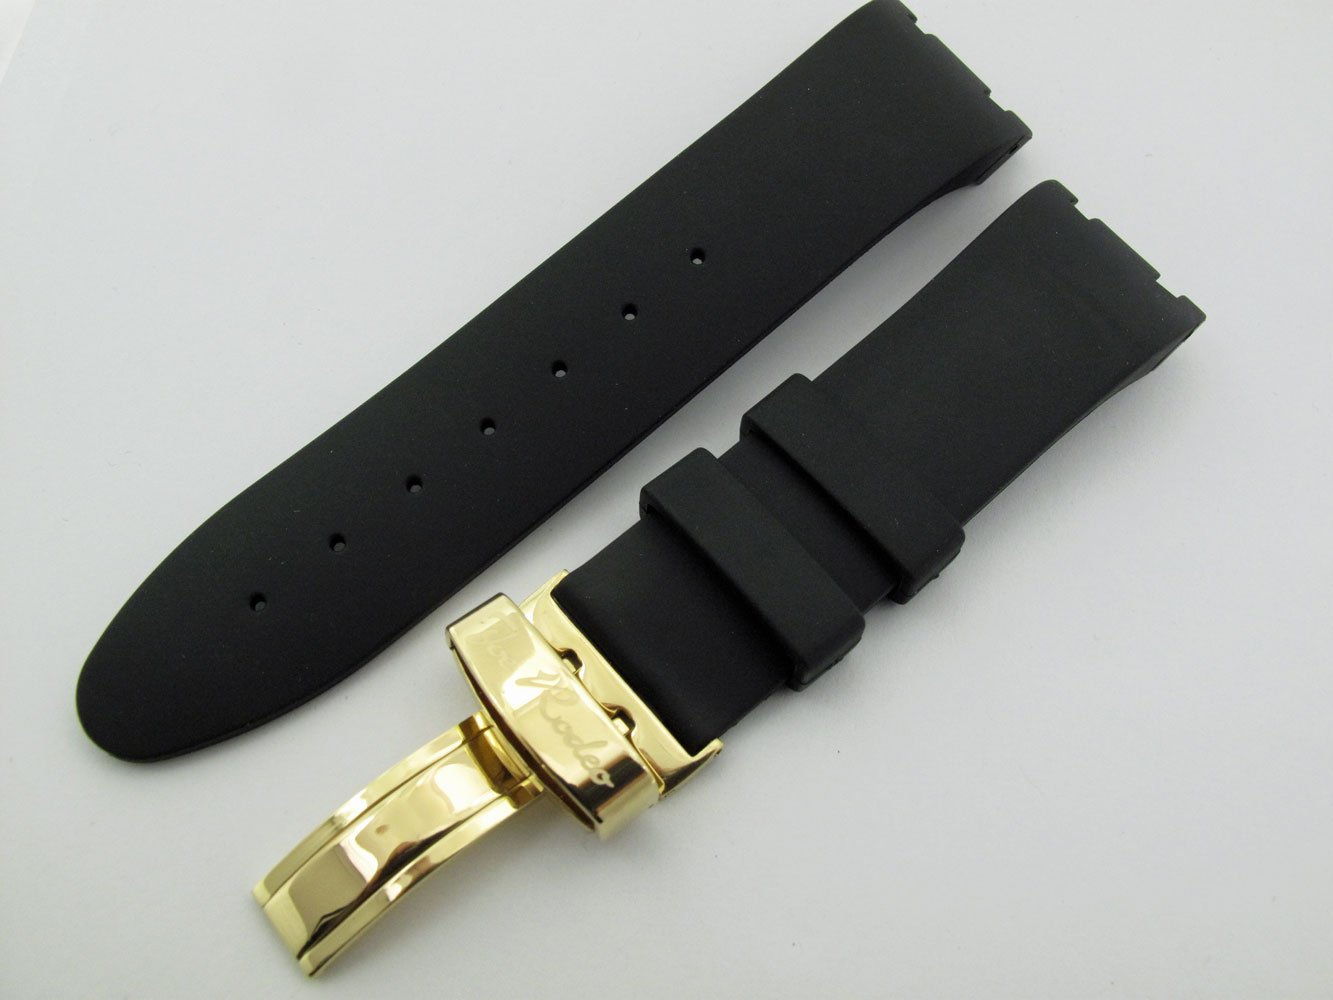 Joe Rodeo Men's Watch Band Strap Fit All Master Model Yellow Color Clasp. by Joe Rodeo (Image #2)